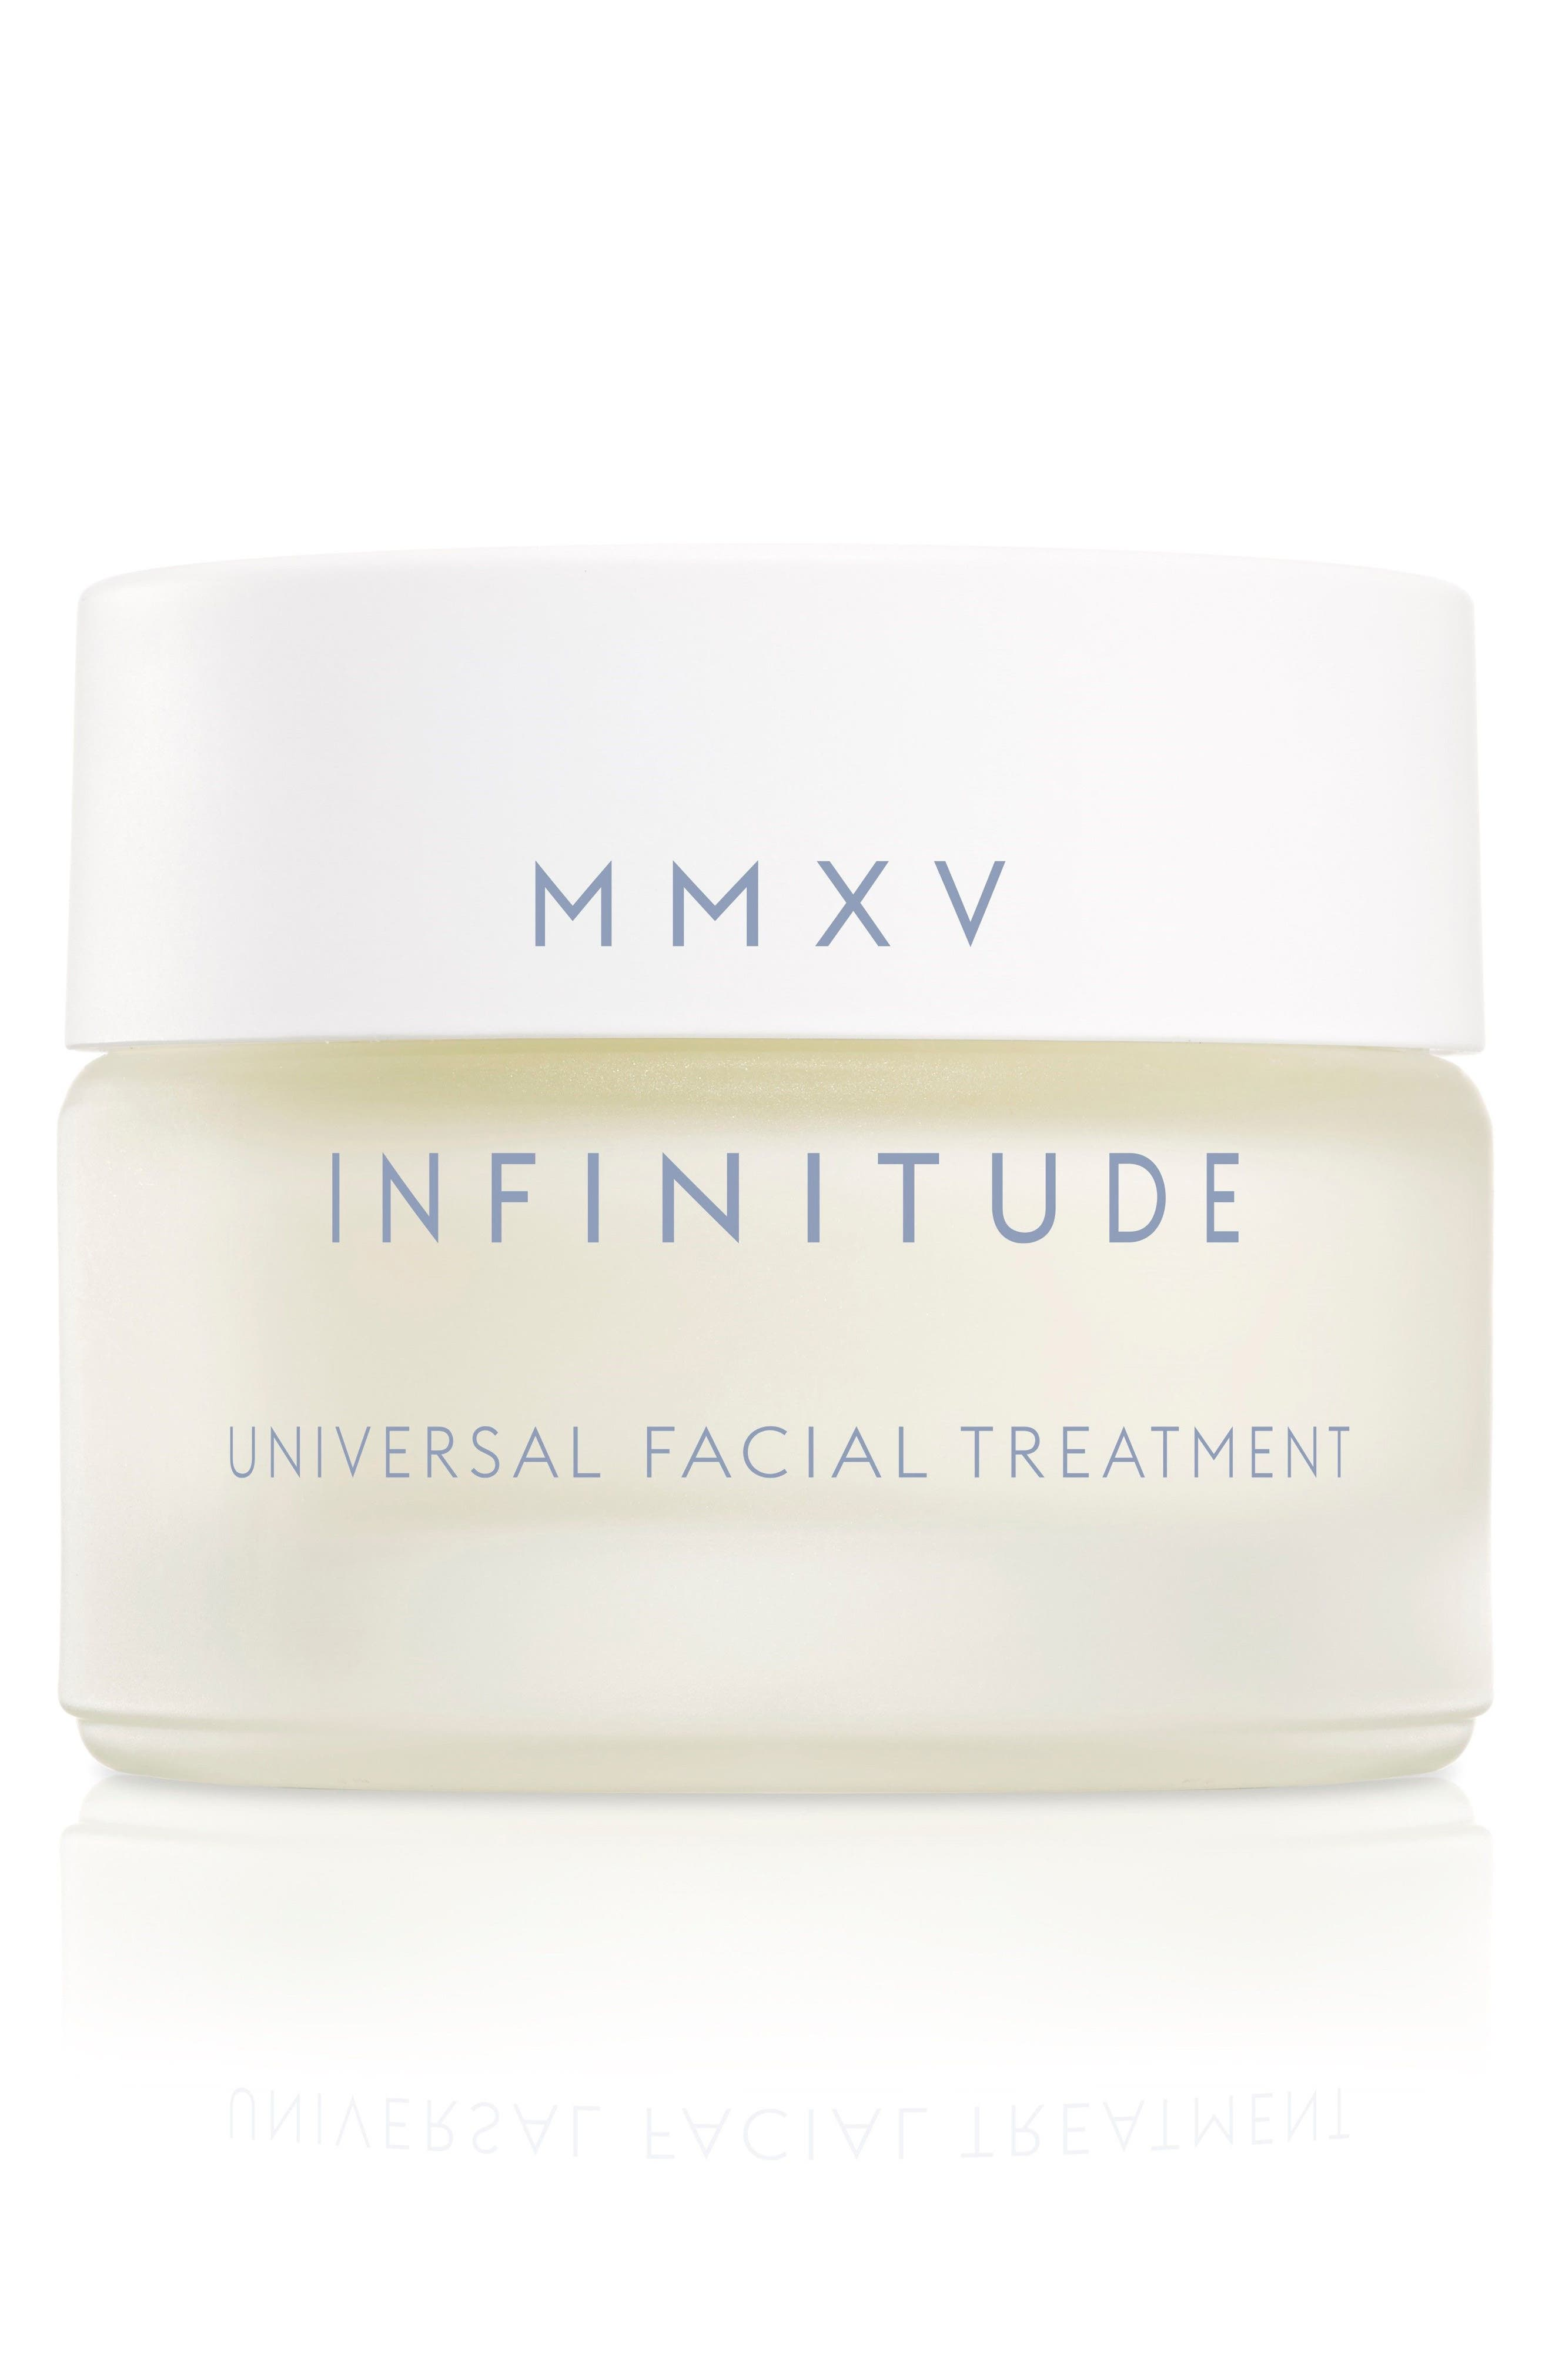 Universal Facial Treatment,                             Main thumbnail 1, color,                             No Color